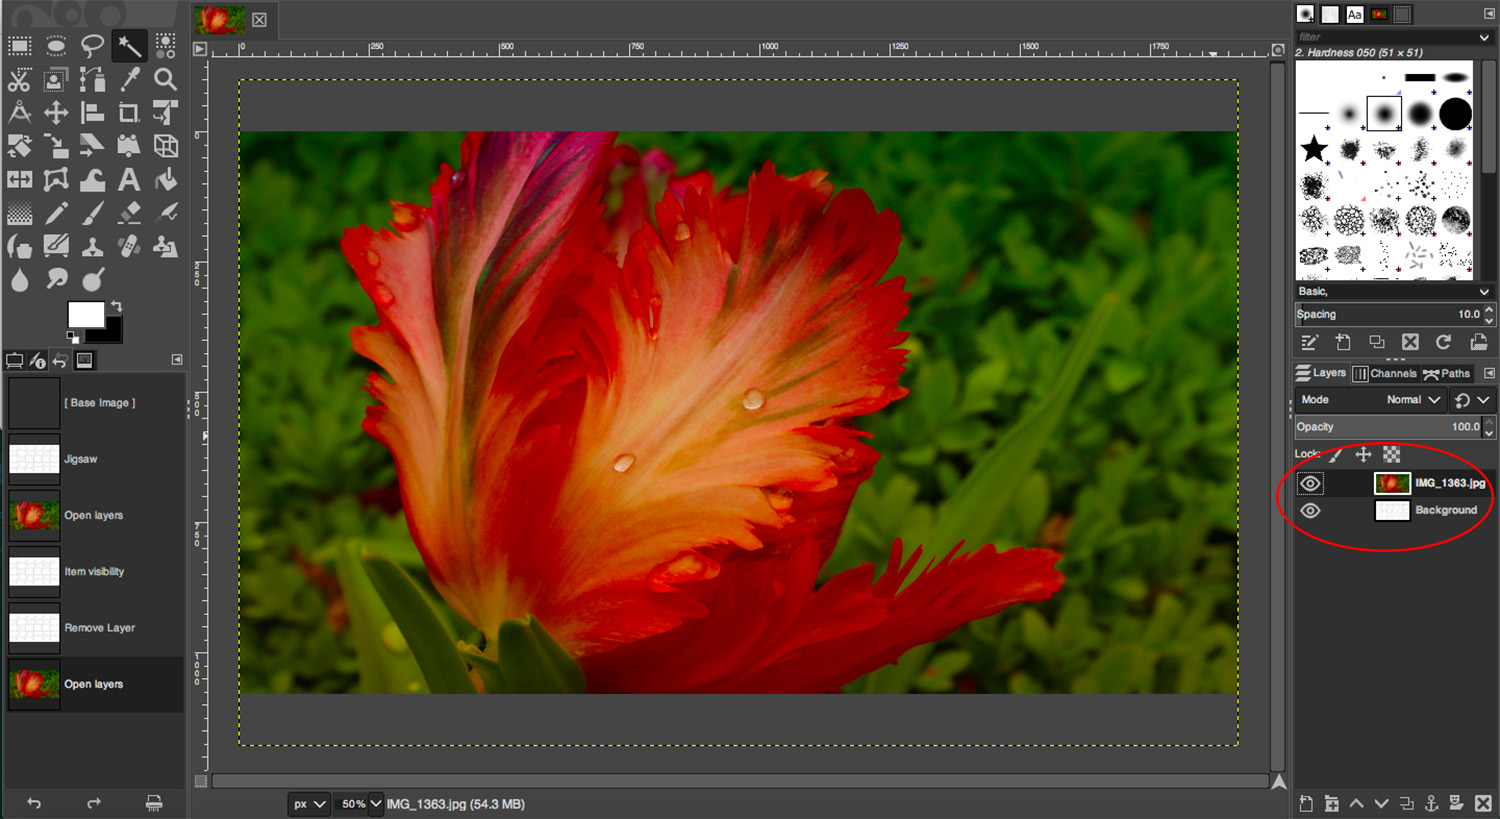 Open As Layer in GIMP